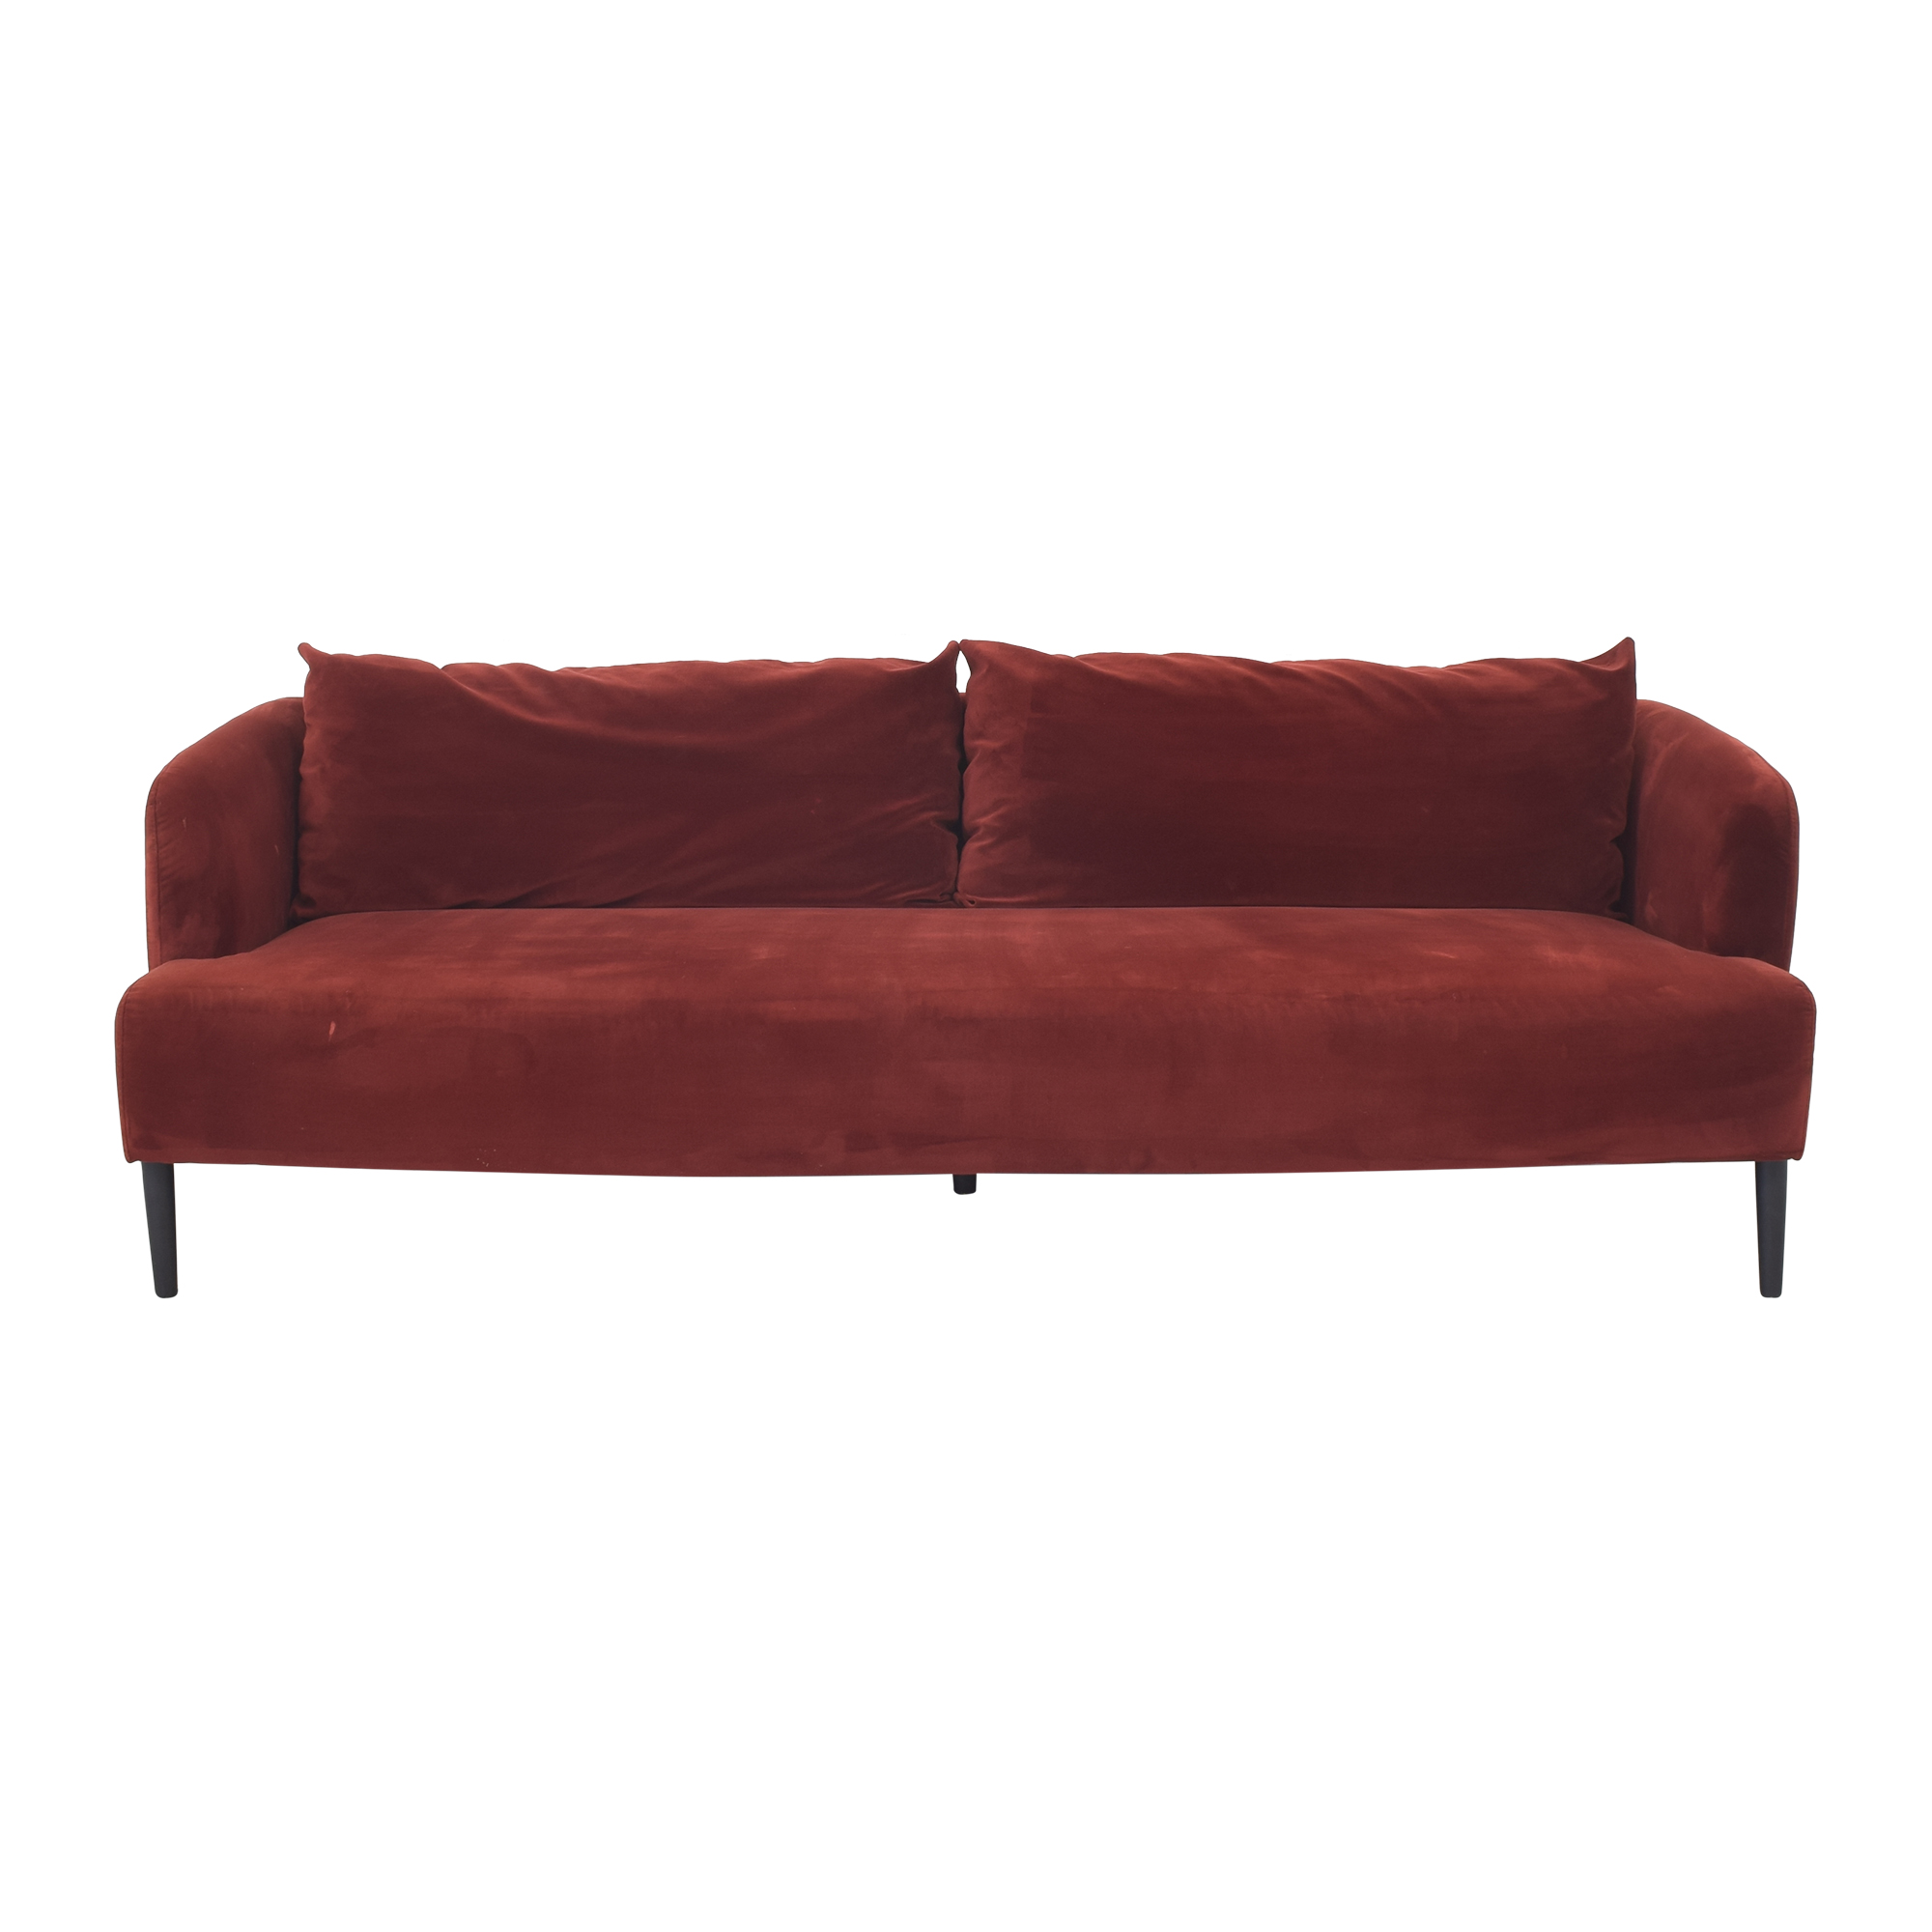 CB2 CB2 Ronan Sofa coupon